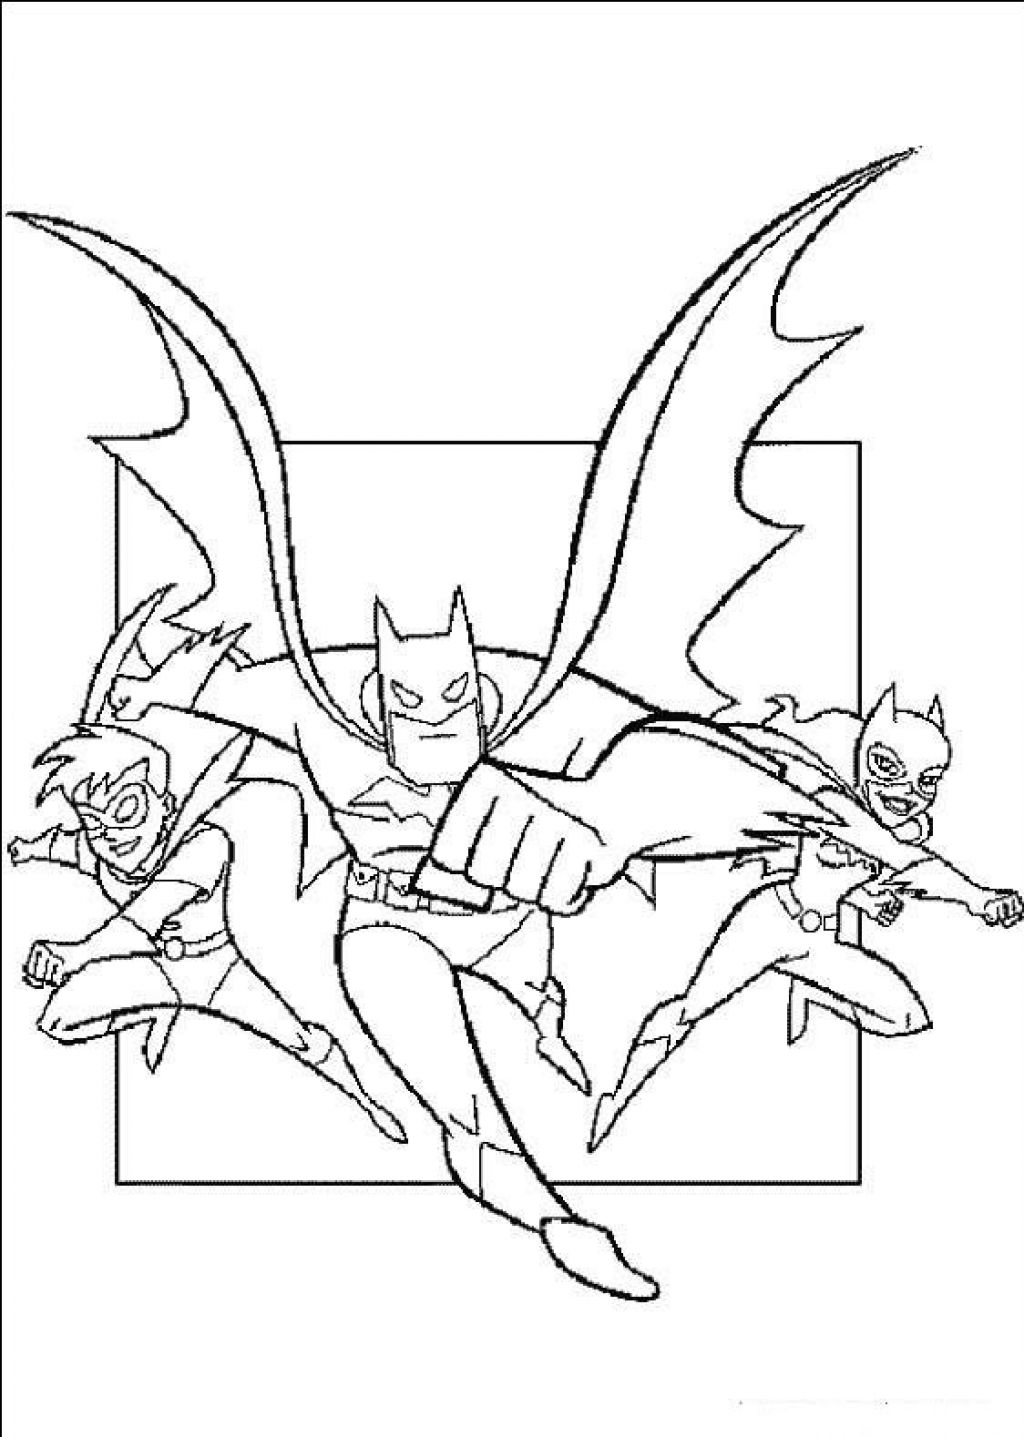 free coloring pages batman - photo#27